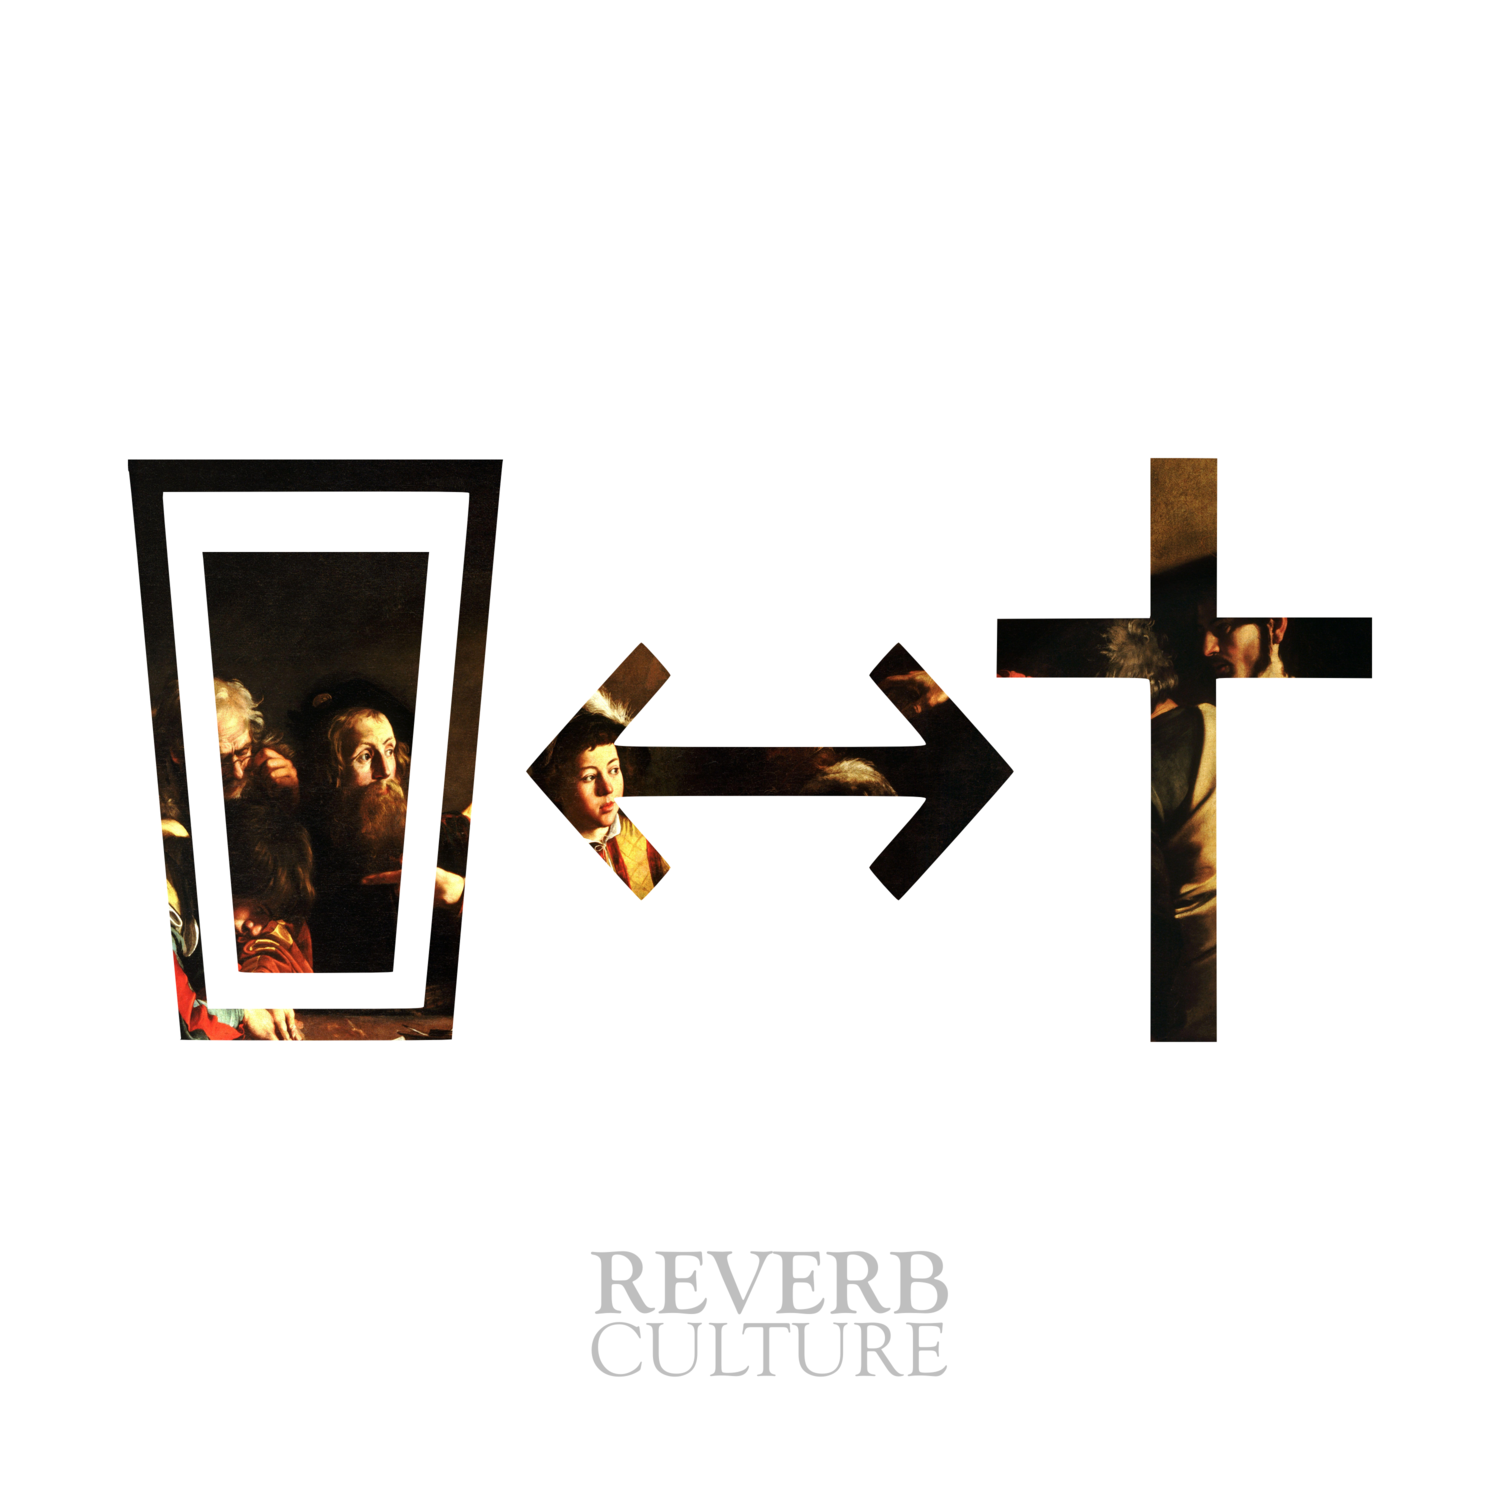 Between the Pint and the Cross - Reverb Culture